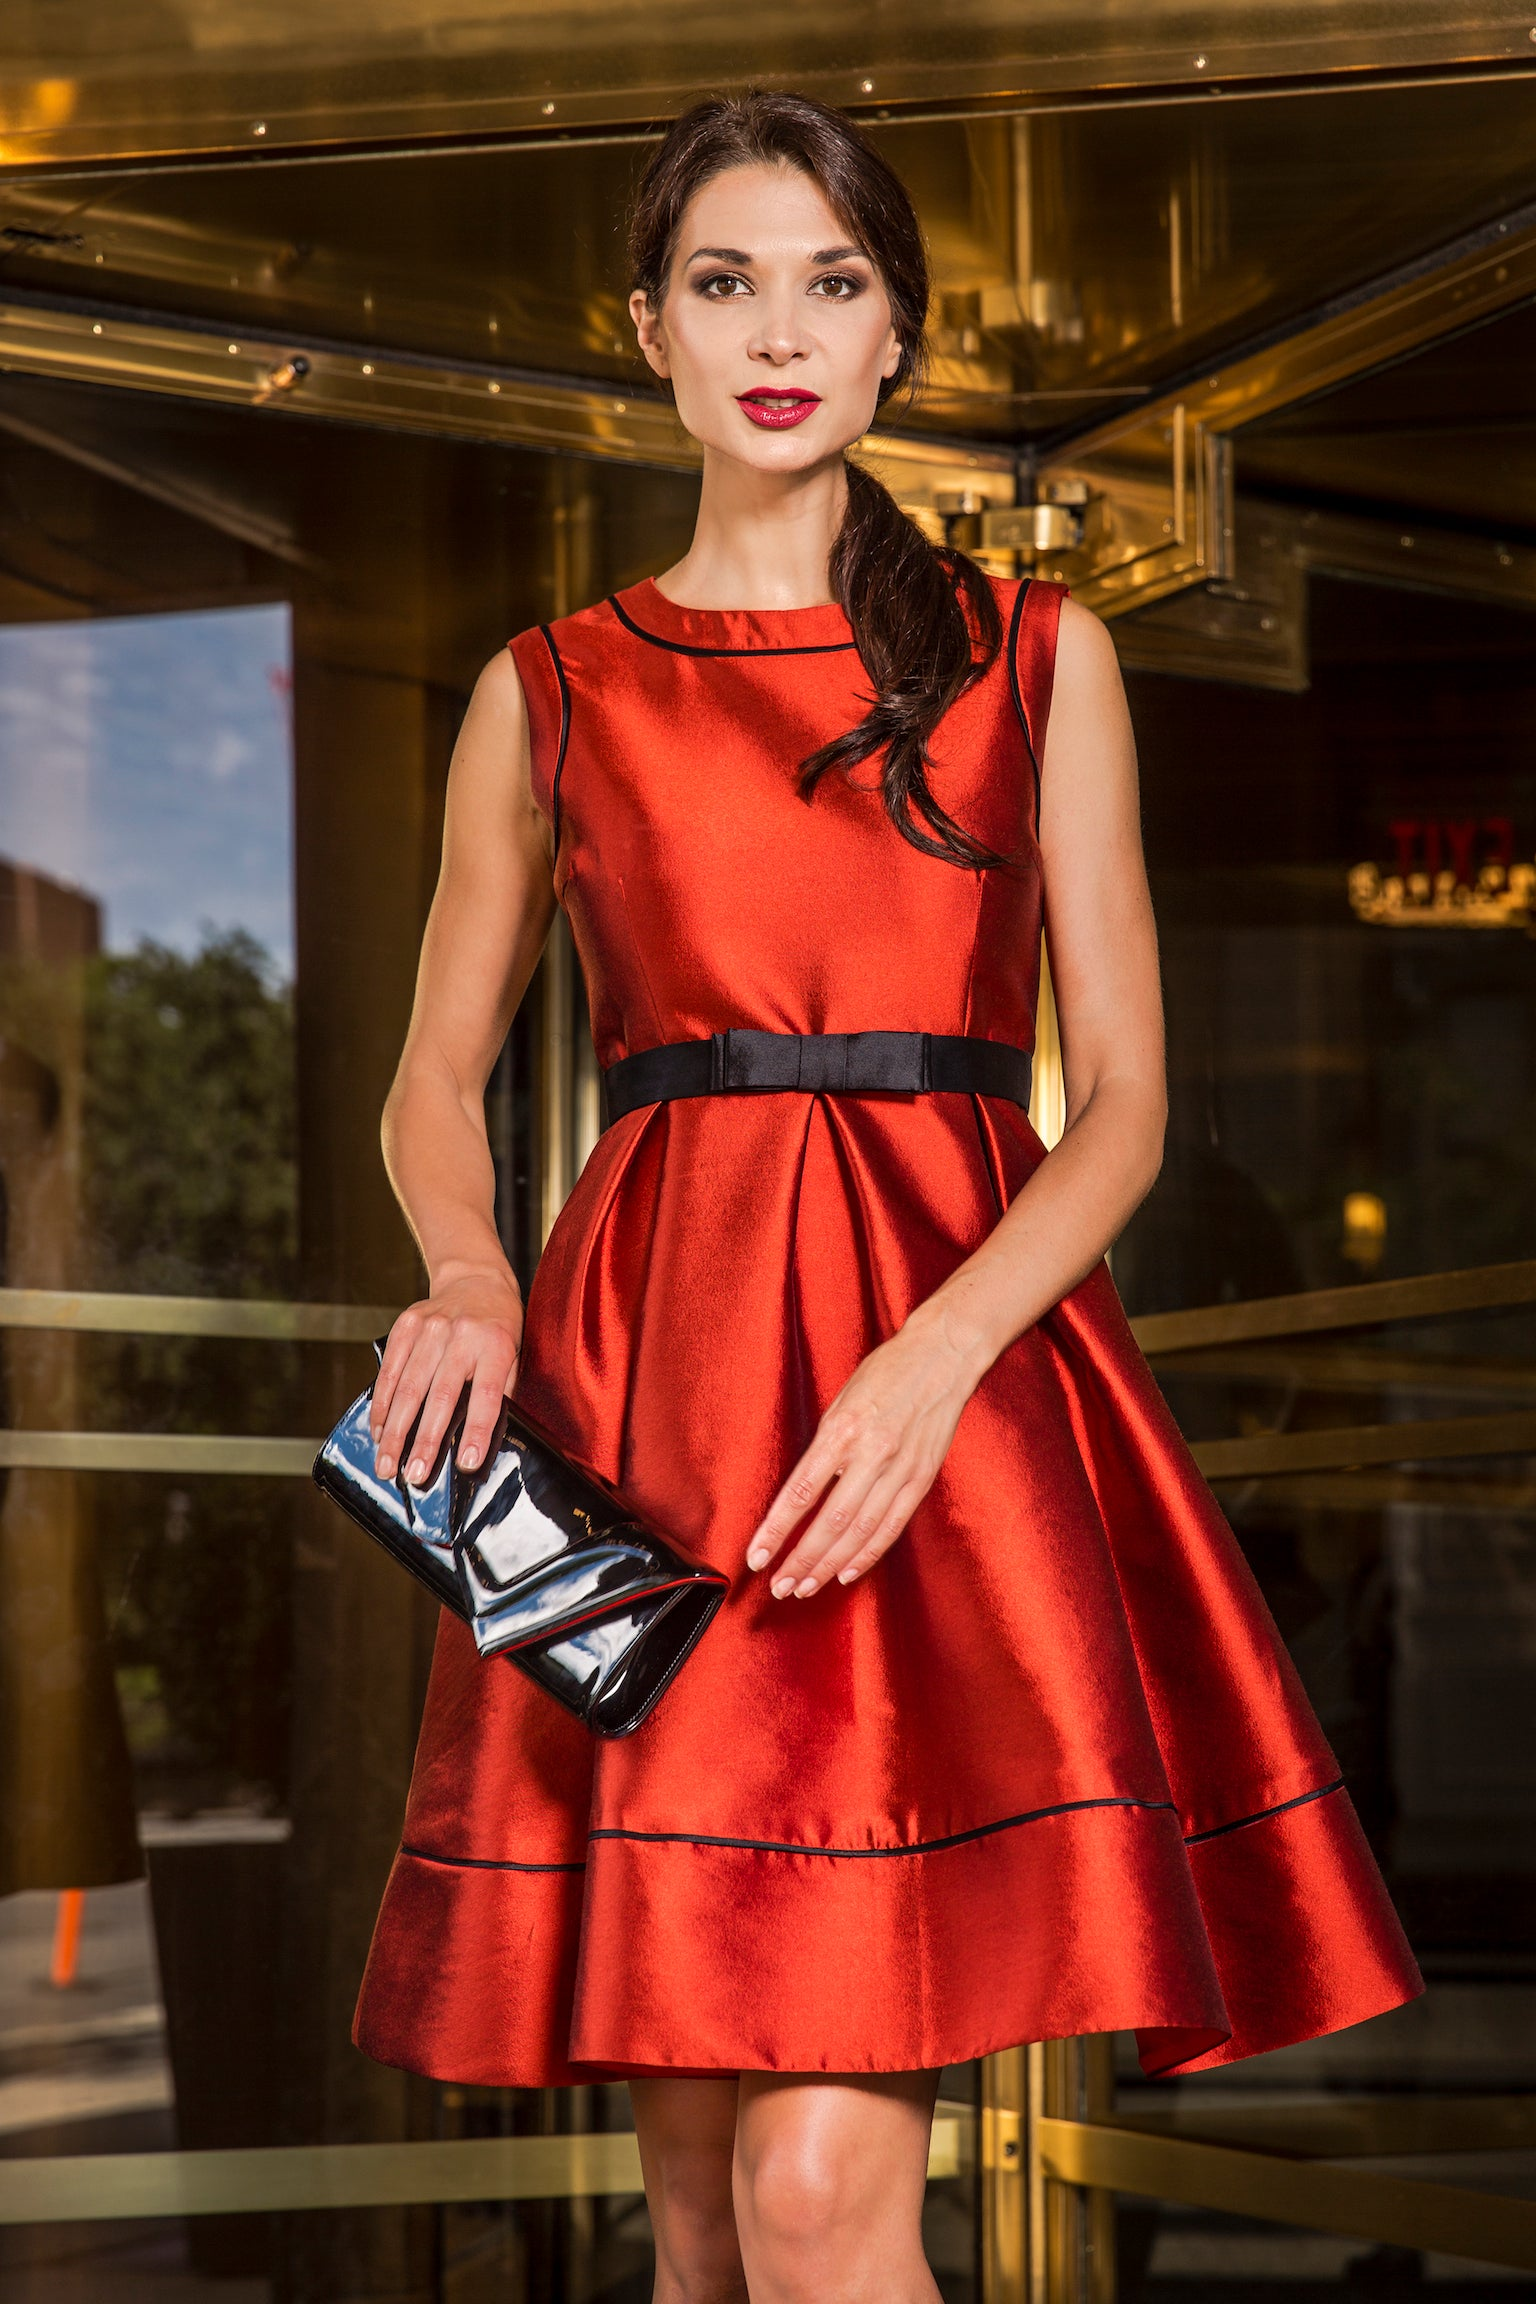 anna nieman designer dress Boston. Inspired by the style of iconic Audrey Hepburn, this silk/wool full skirt is accentuated with black trim and empire waist height belt with a classic bow.